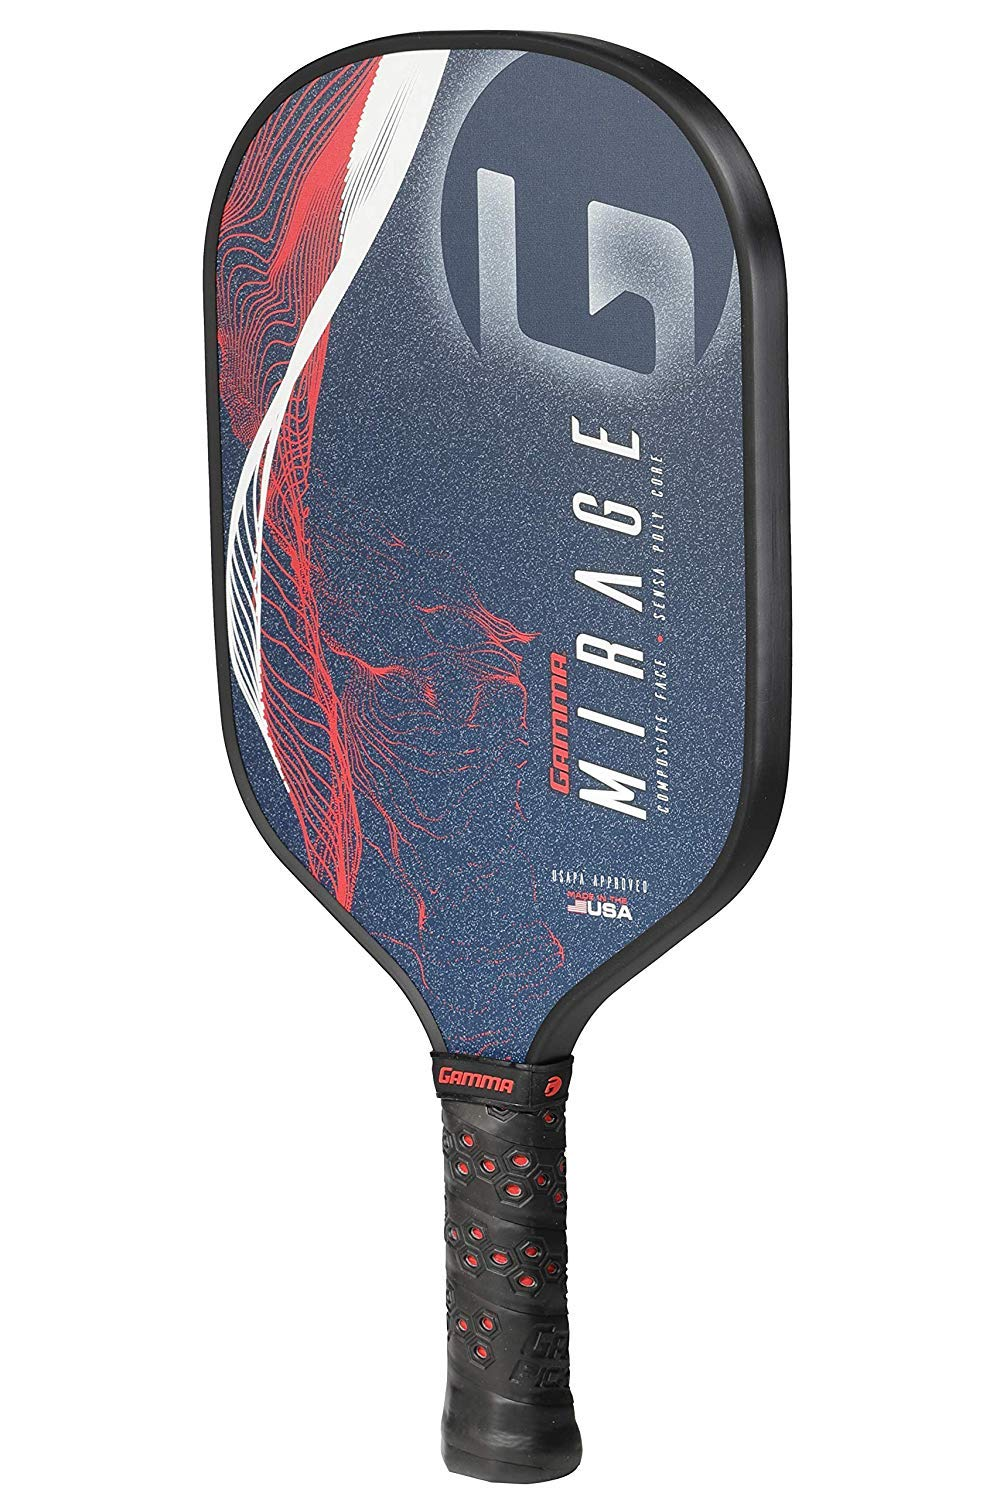 GAMMA Mirage Composite Pickleball Paddle: Pickle Ball Paddles for Indoor & Outdoor Play - USAPA Approved Racquet for Adults & Kids - Red/White/Blue by Gamma (Image #3)